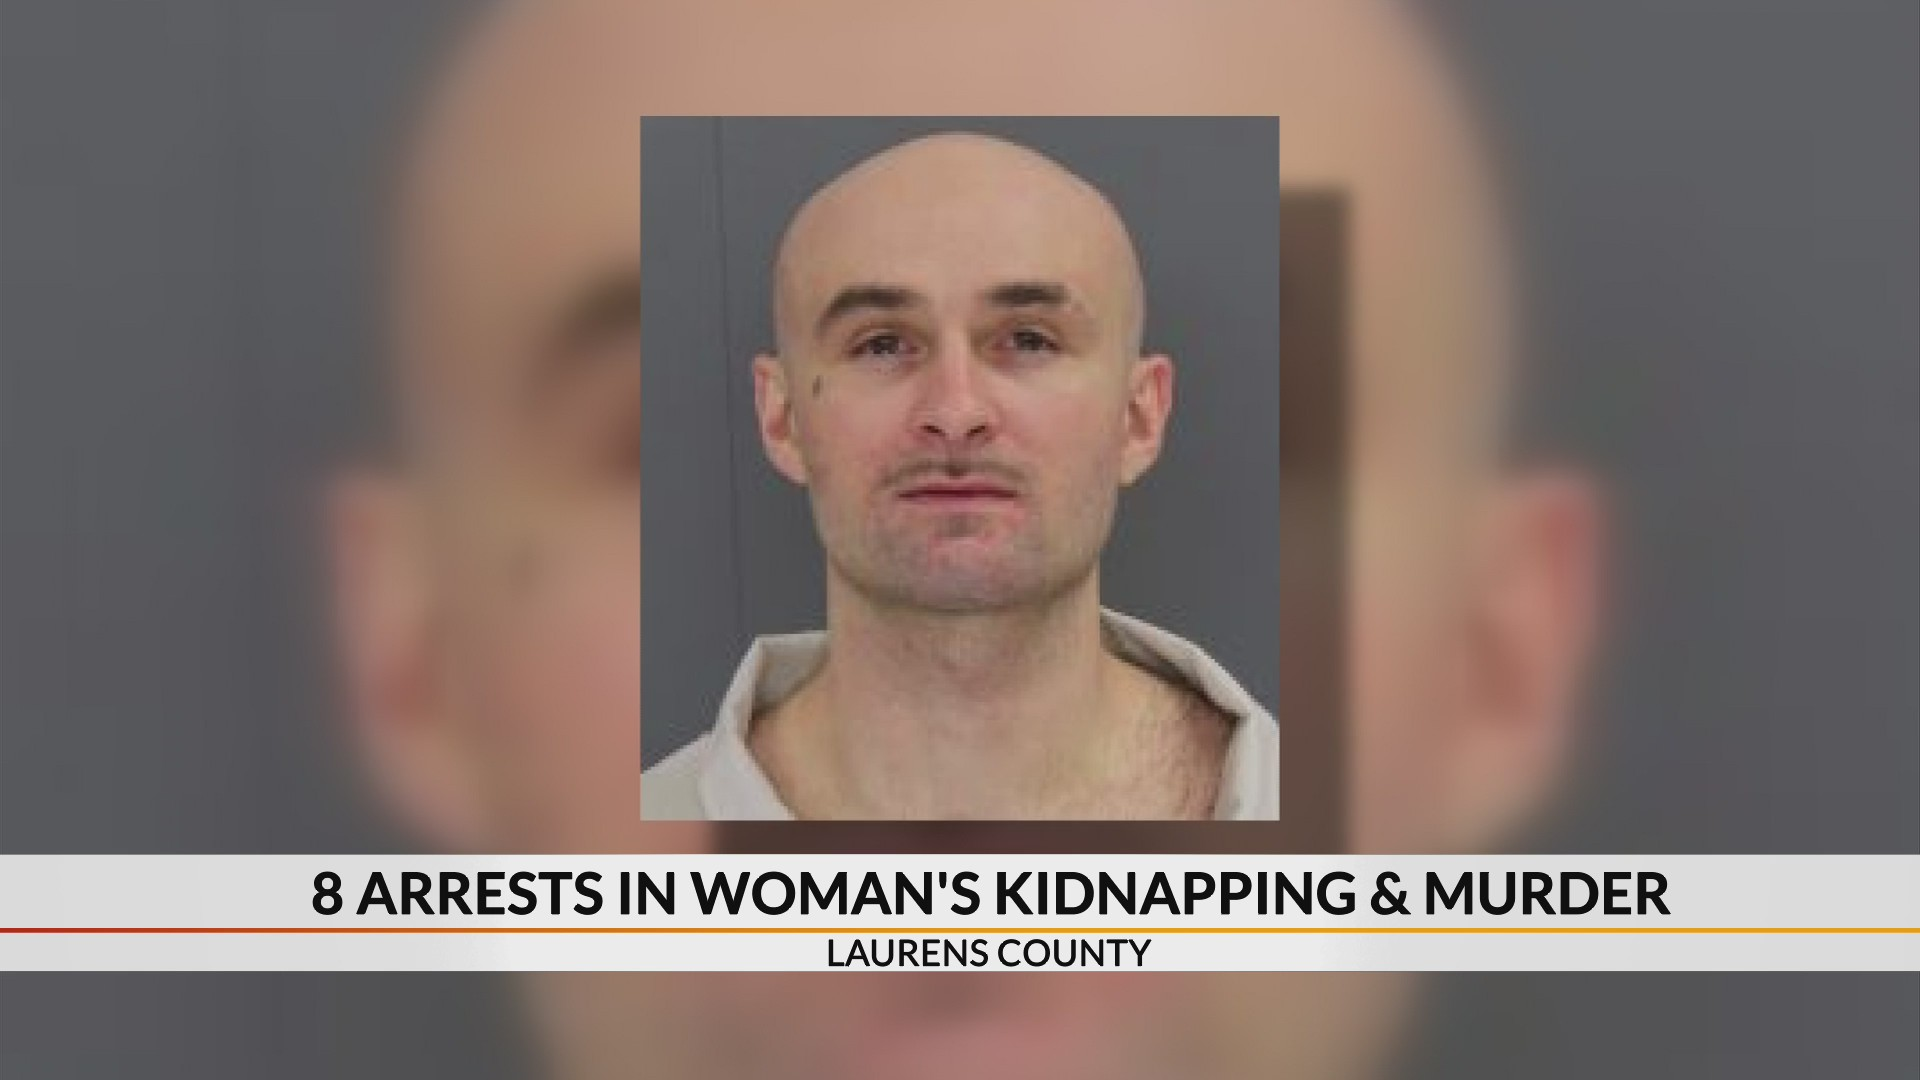 Contraband cell phone allowed man to orchestrate woman's